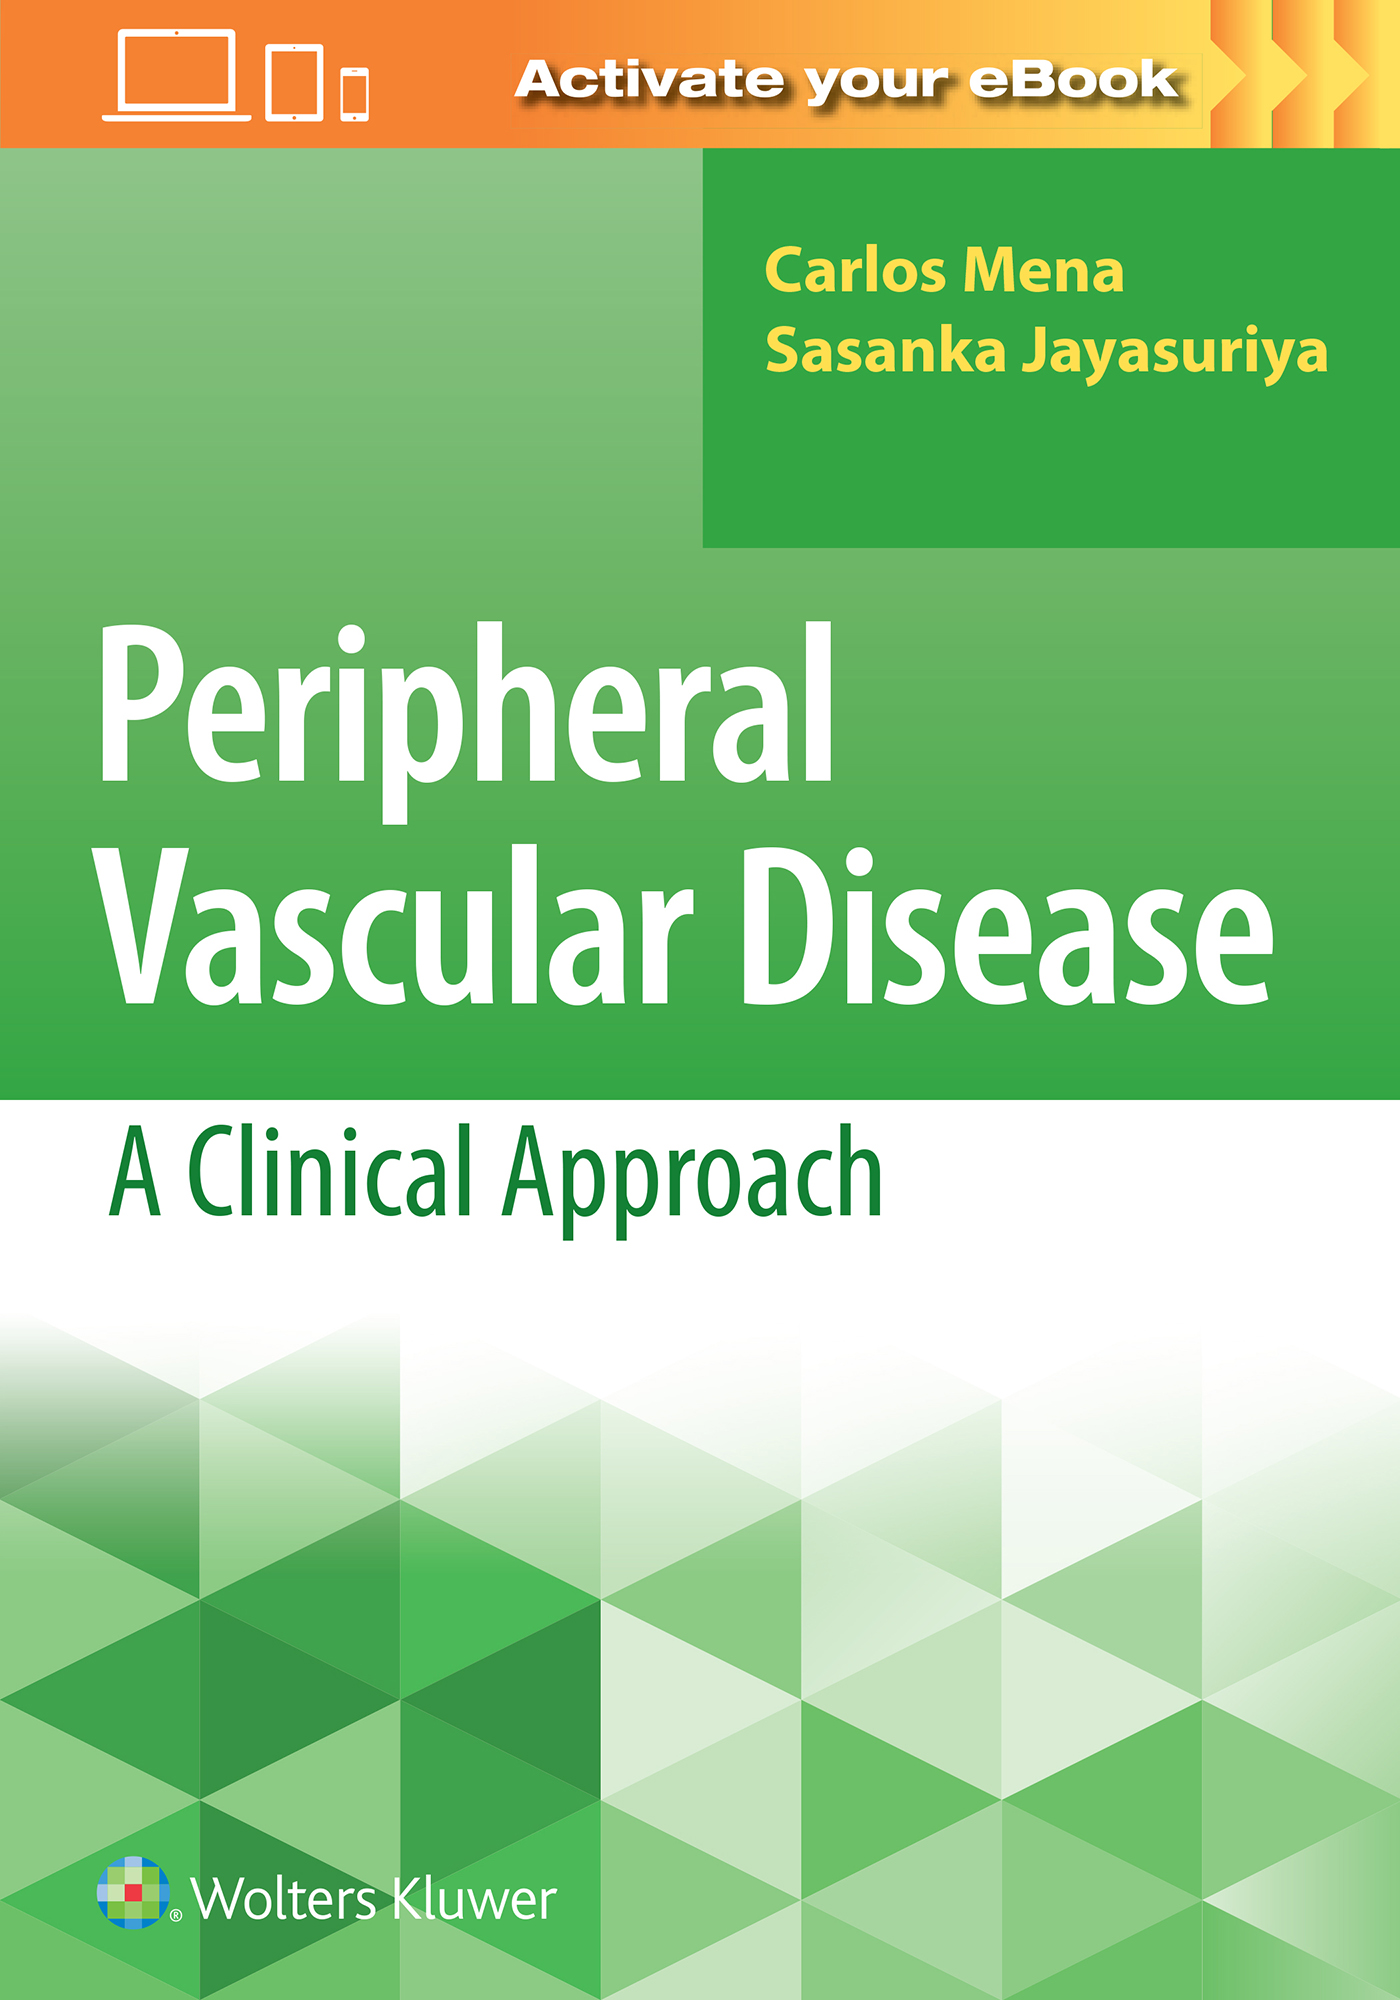 Peripheral Vascular Disease: A Clinical Approach